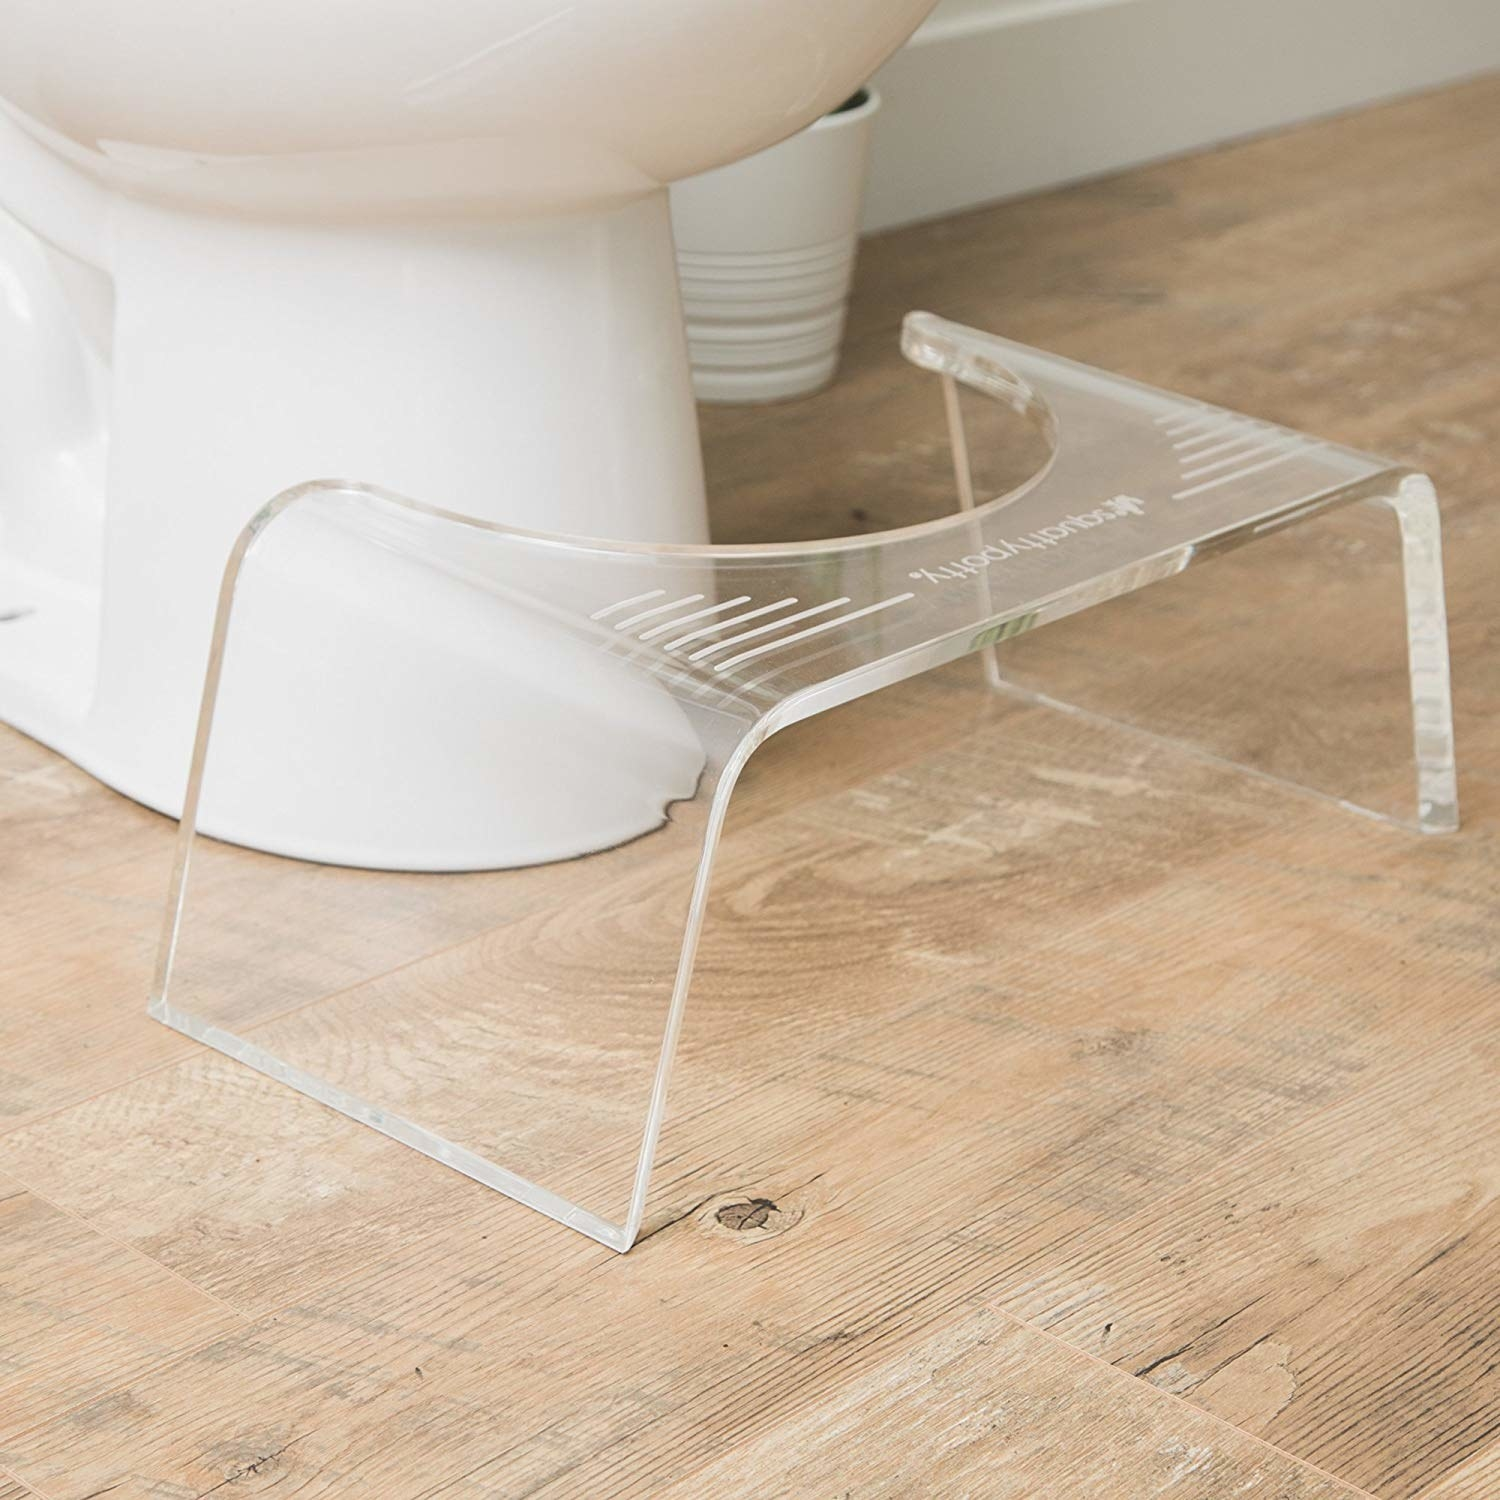 Acrylic Squatty Potty in front of toilet